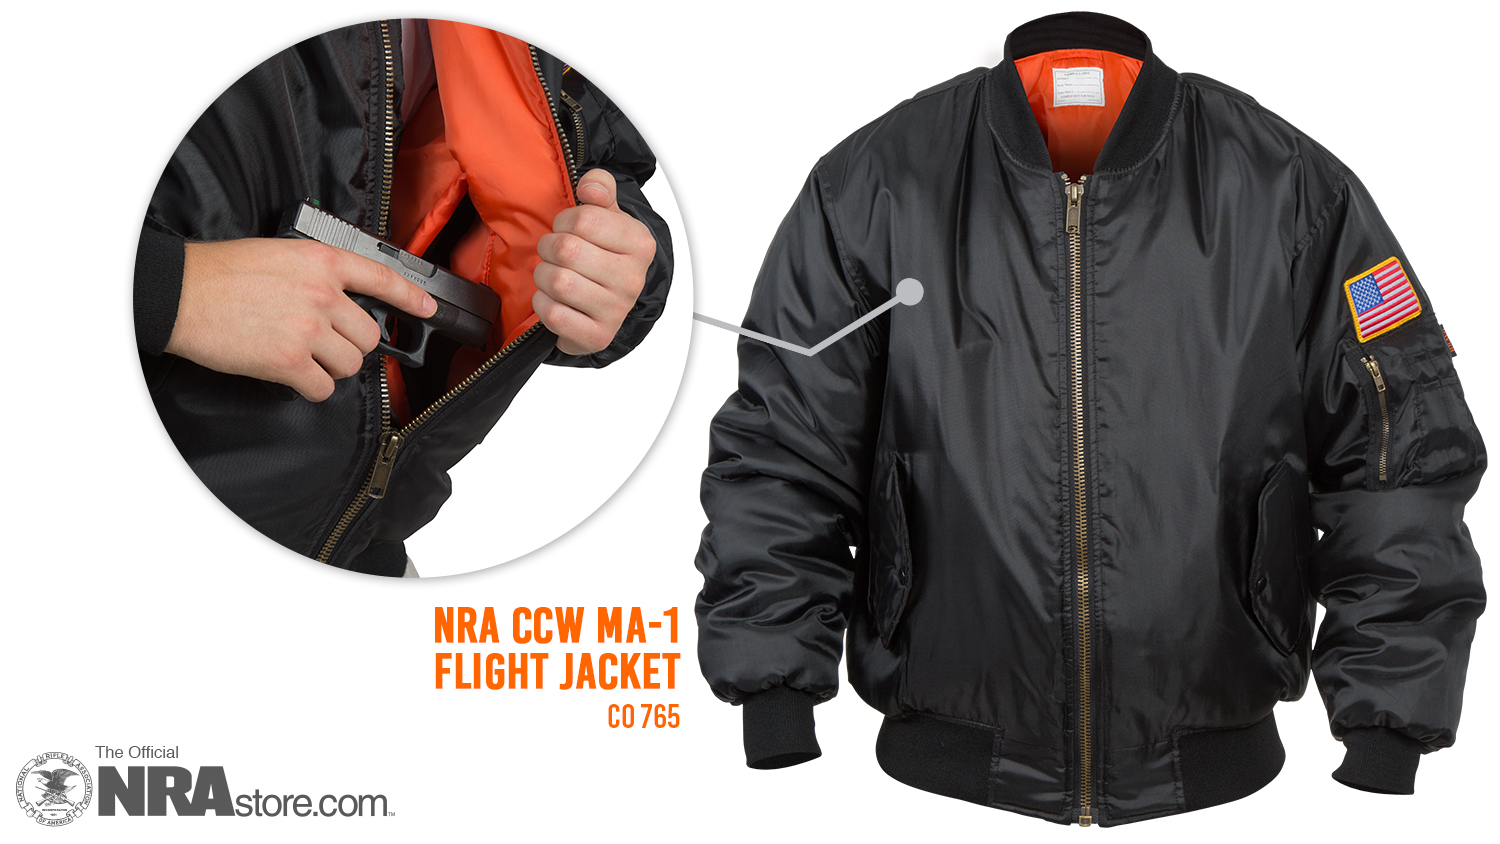 NRA Blog | The NRA Flight Jacket Is Your New Favorite CCW Garment